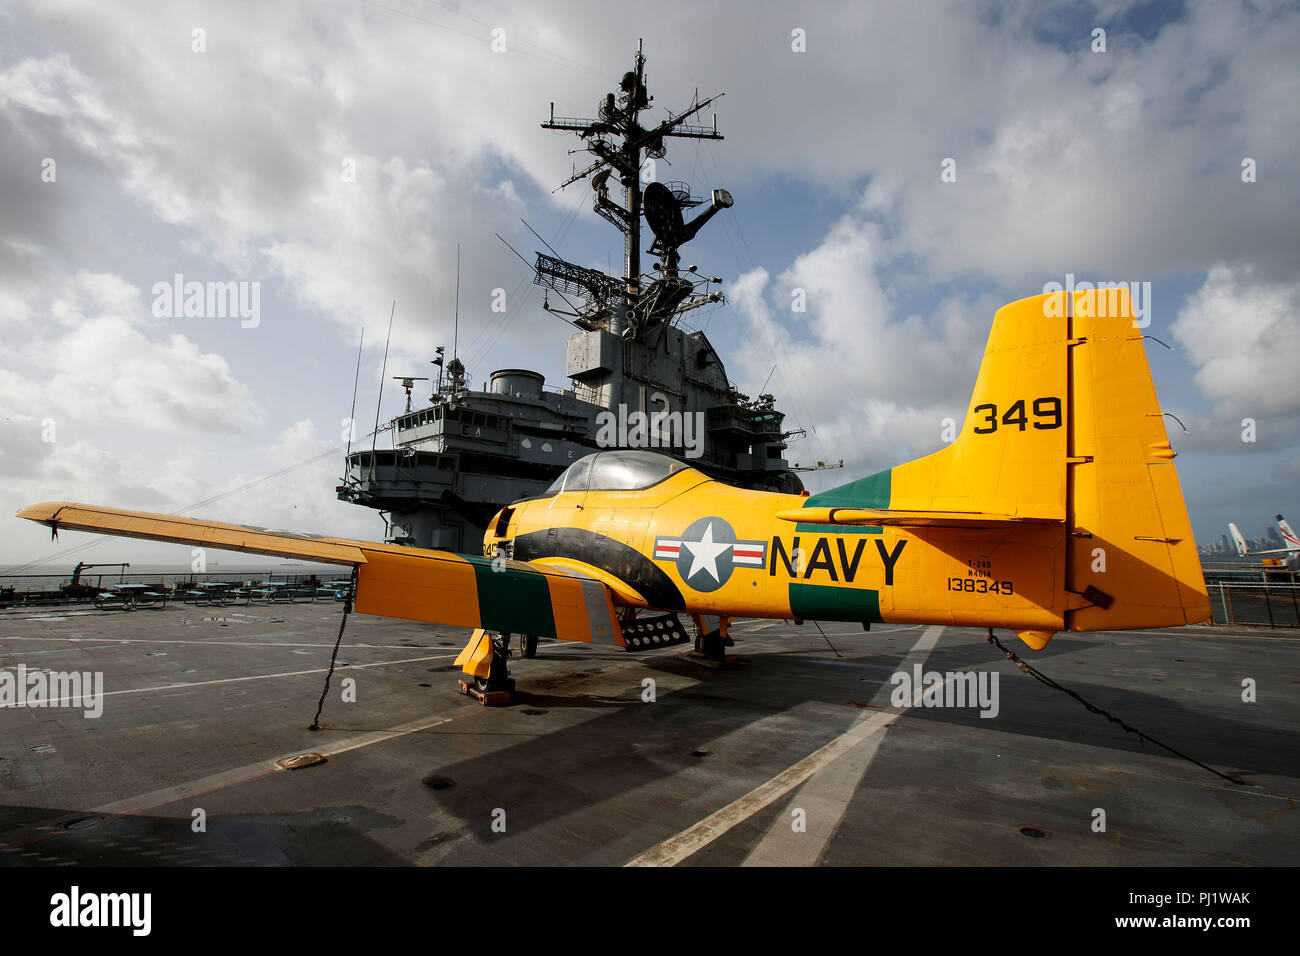 North American T-28 Trojan (138349) on the deck of the USS Hornet Museum, Alameda, California, United States of America - Stock Image